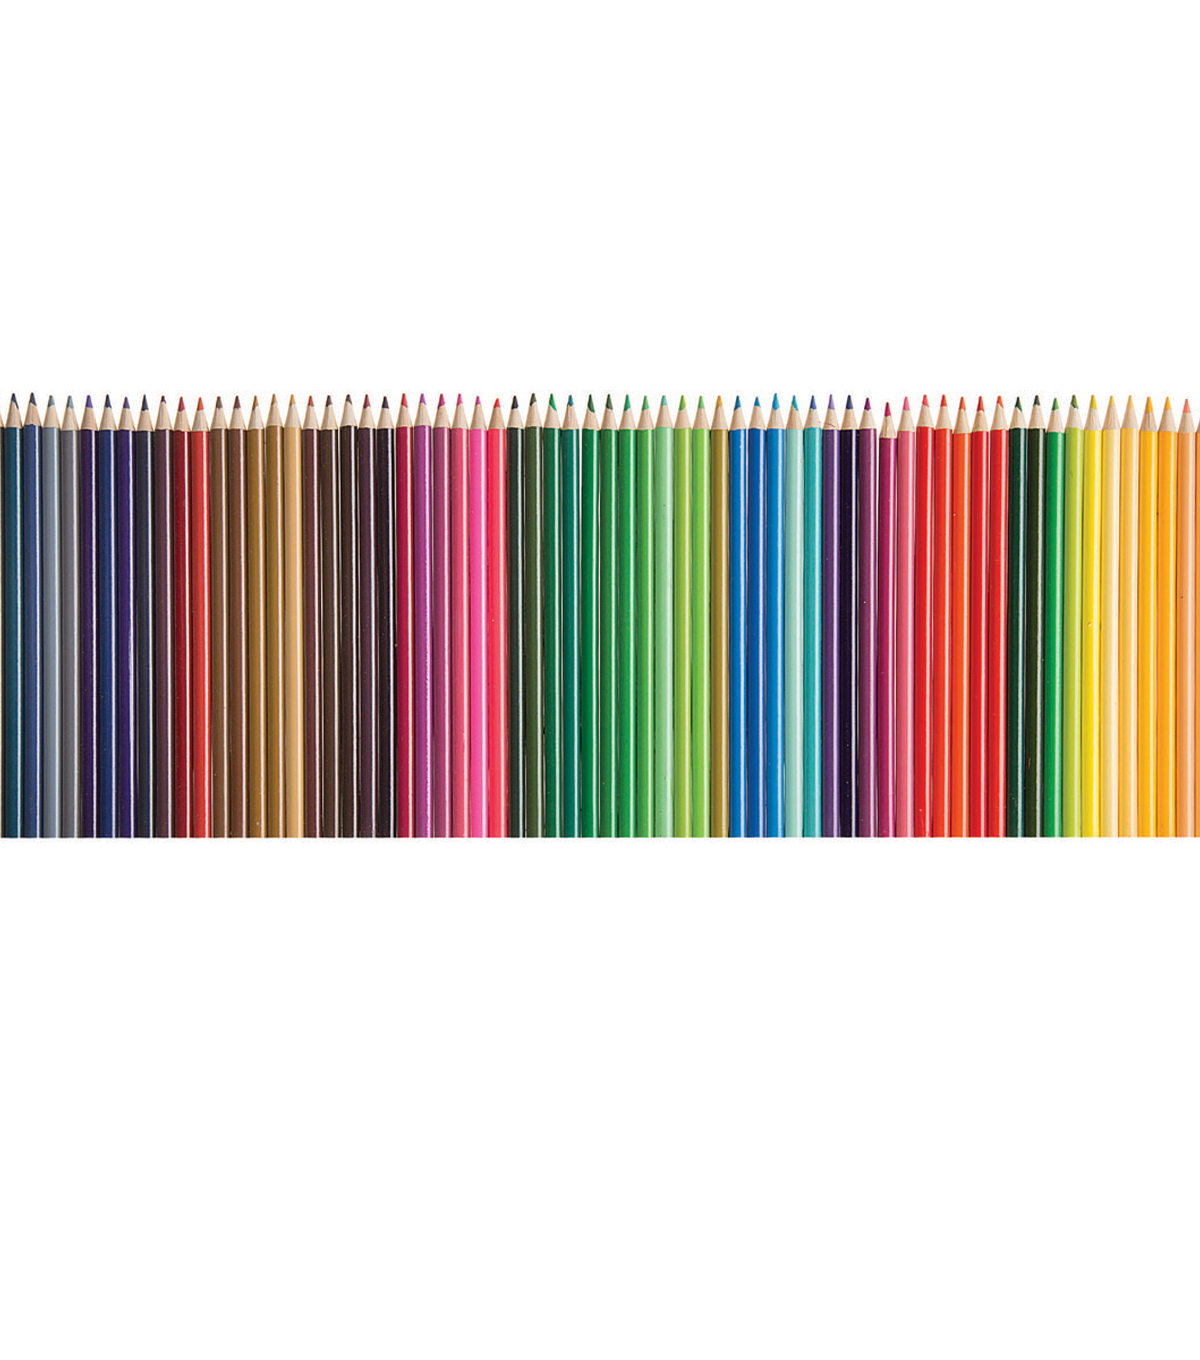 Studio 71 Colored Pencil Set 72 Pack